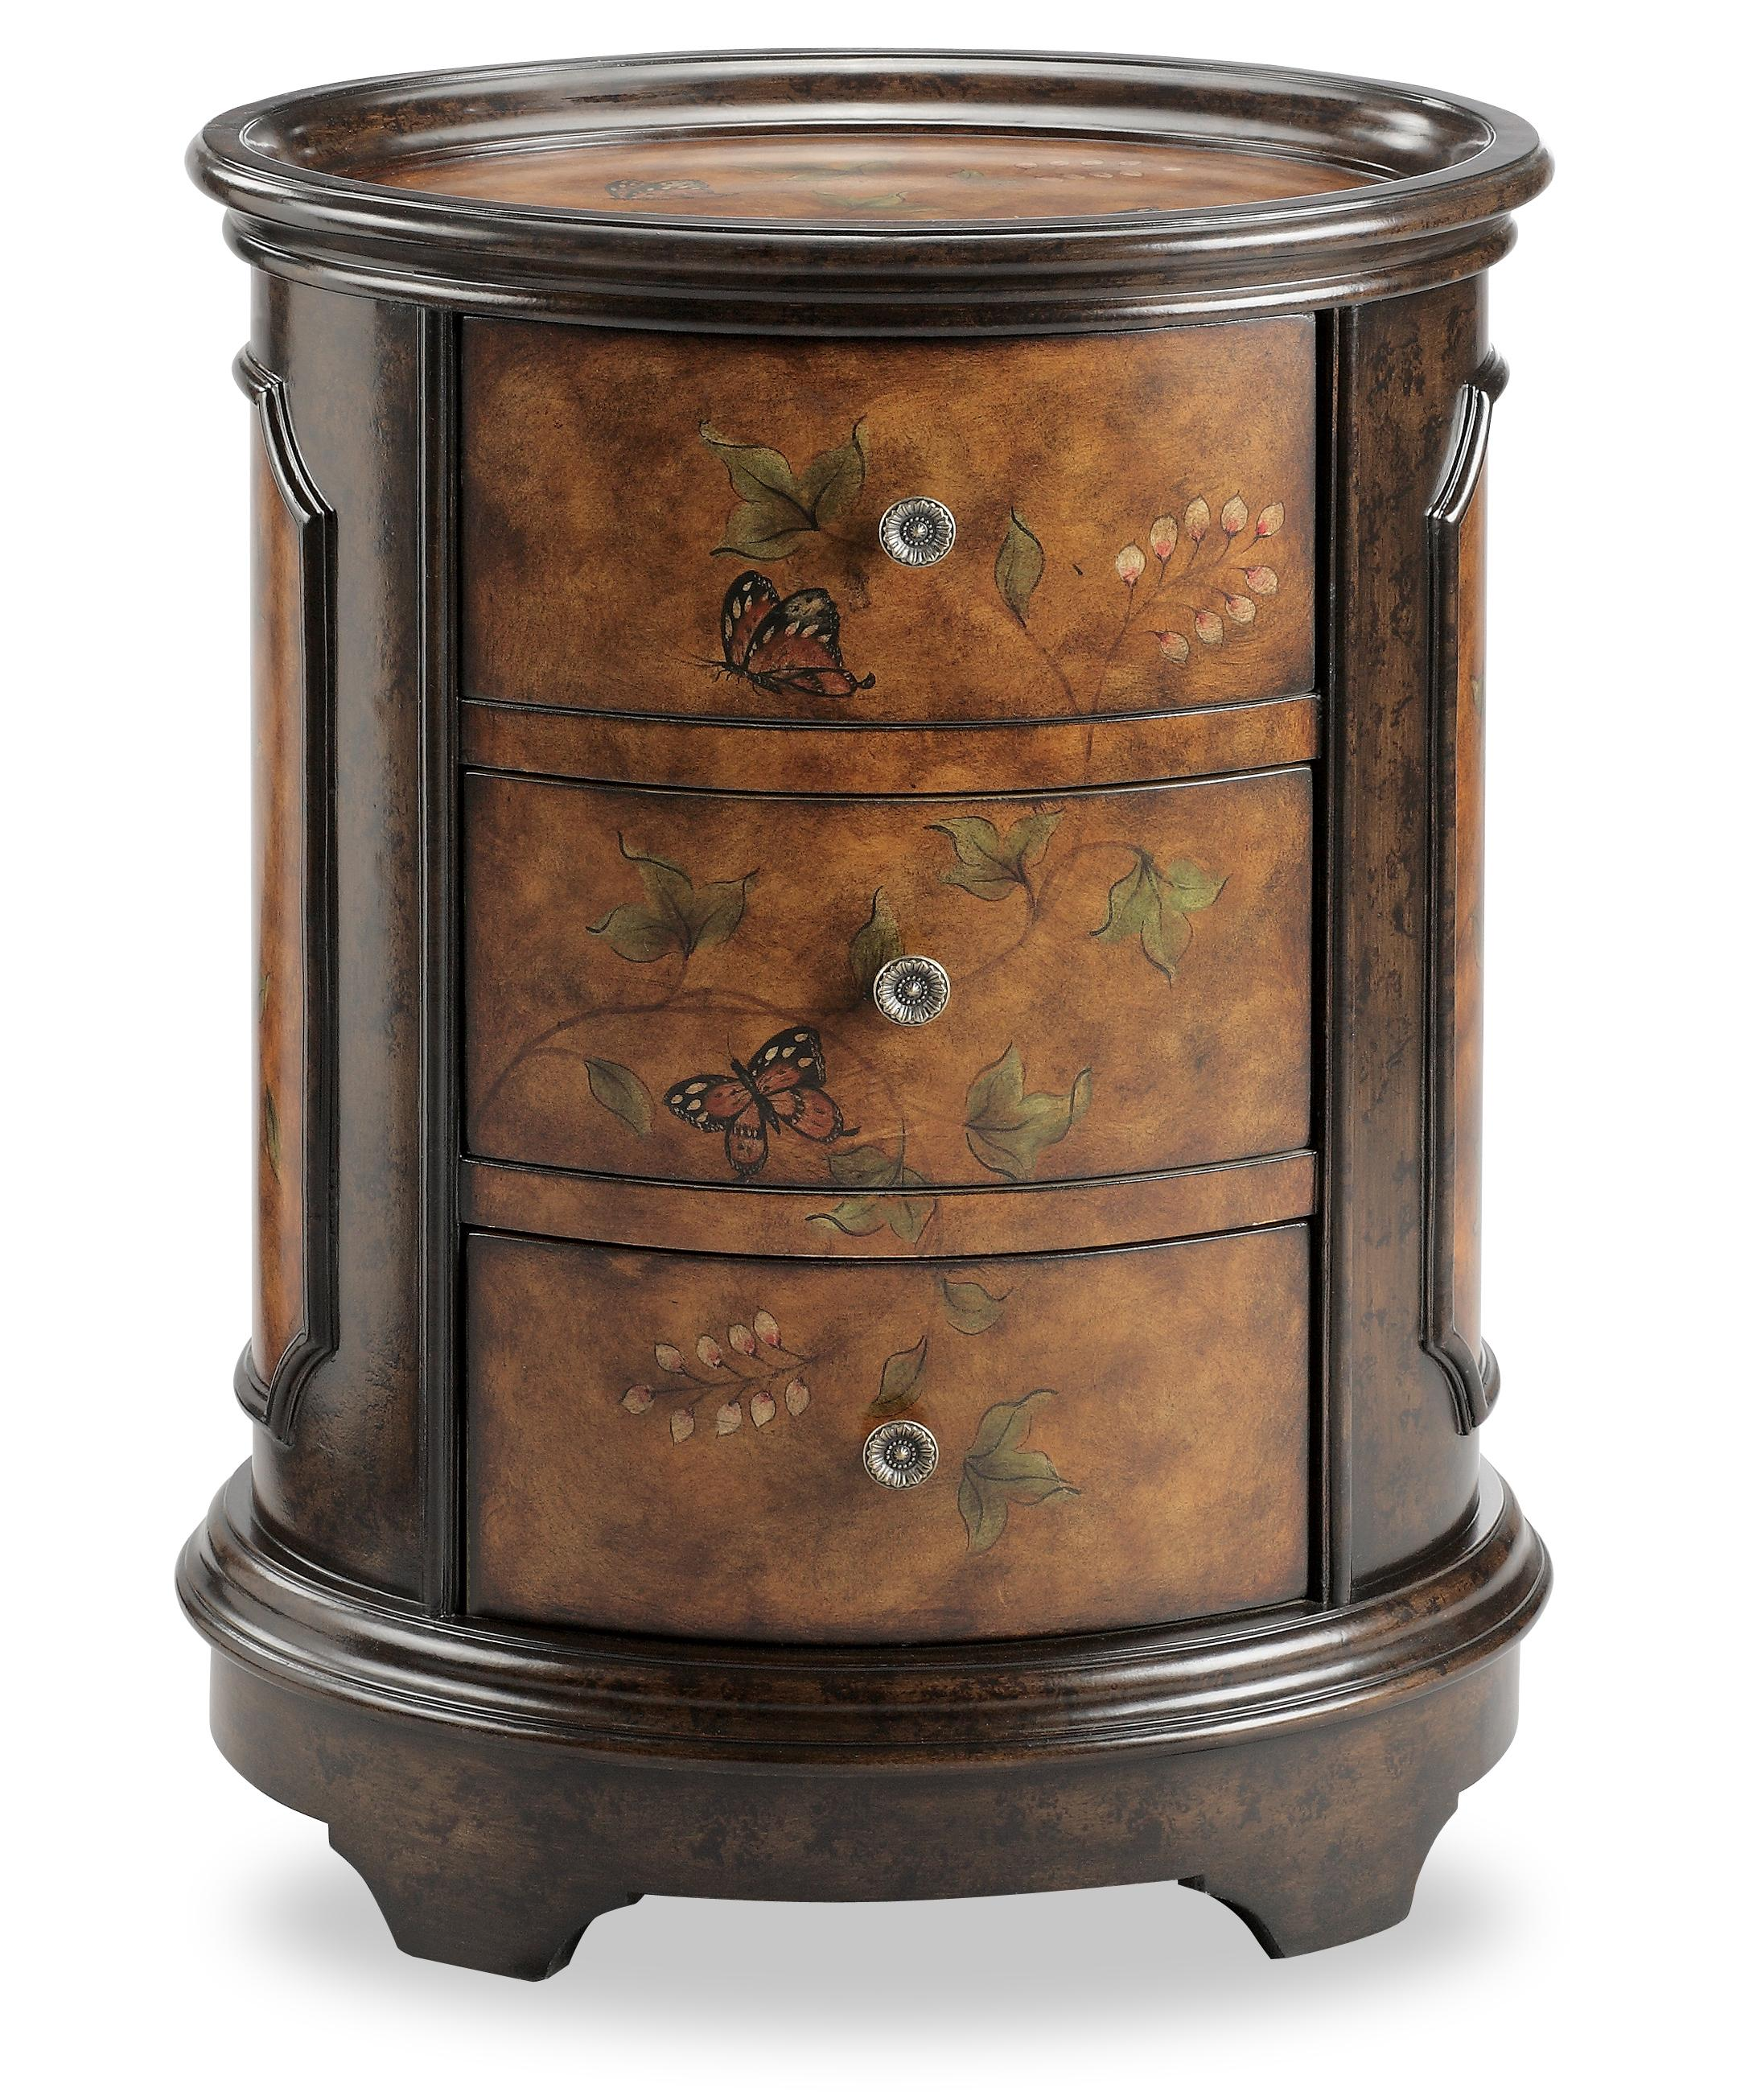 stein world chests oval accent table with butterfly motif products color painted tables ceramic outdoor pedestal legs vintage furniture sydney teal blue bent acrylic coffee grey